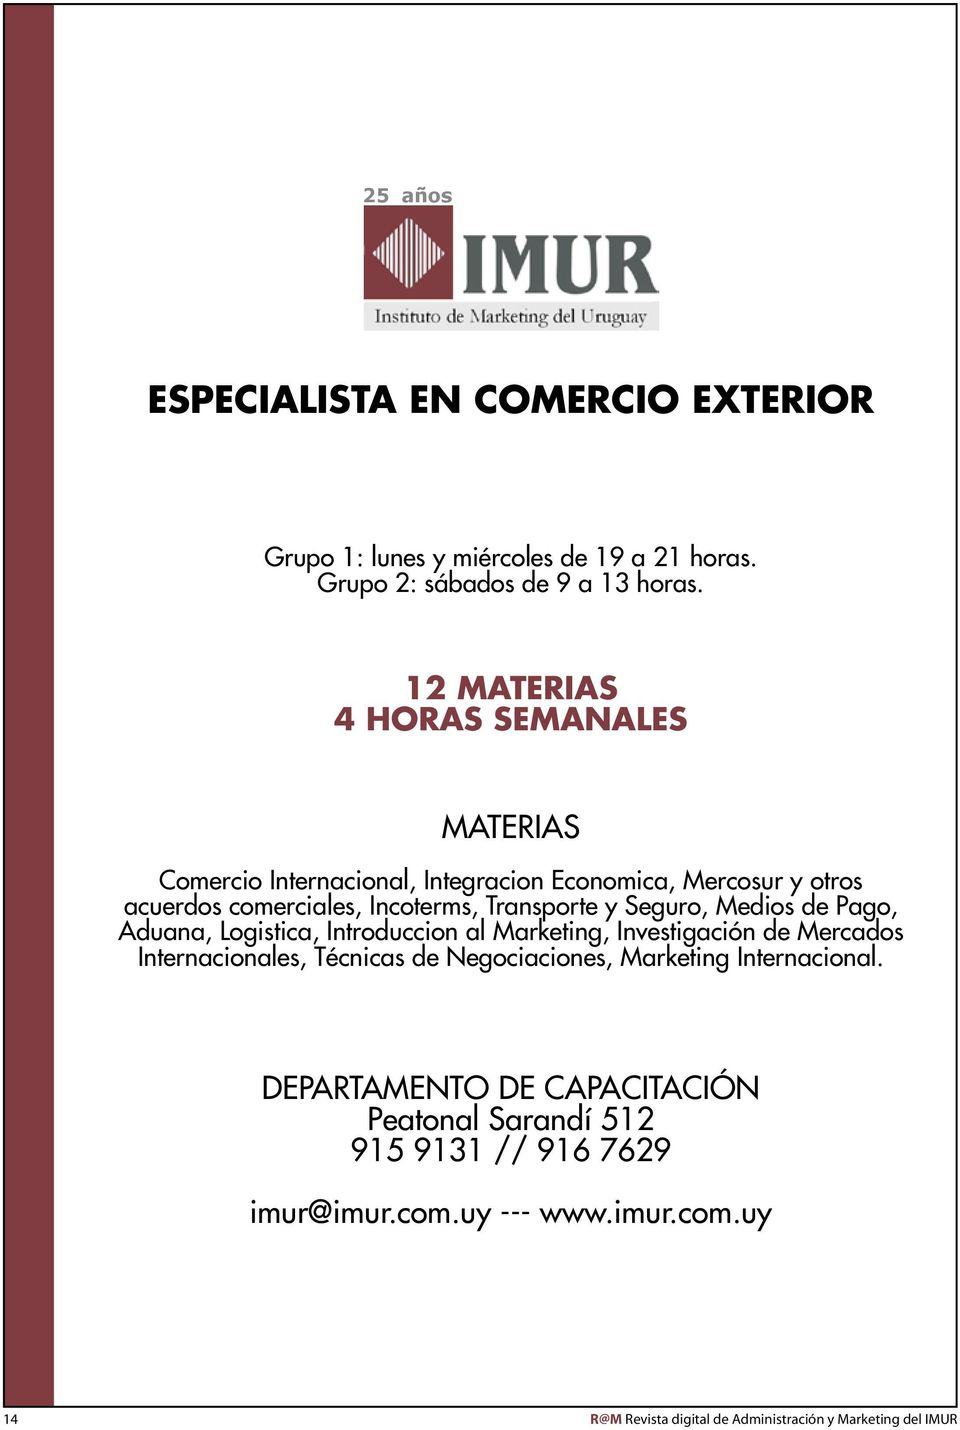 Seguro, Medios de Pago, Aduana, Logistica, Introduccion al Marketing, Investigación de Mercados Internacionales, Técnicas de Negociaciones, Marketing